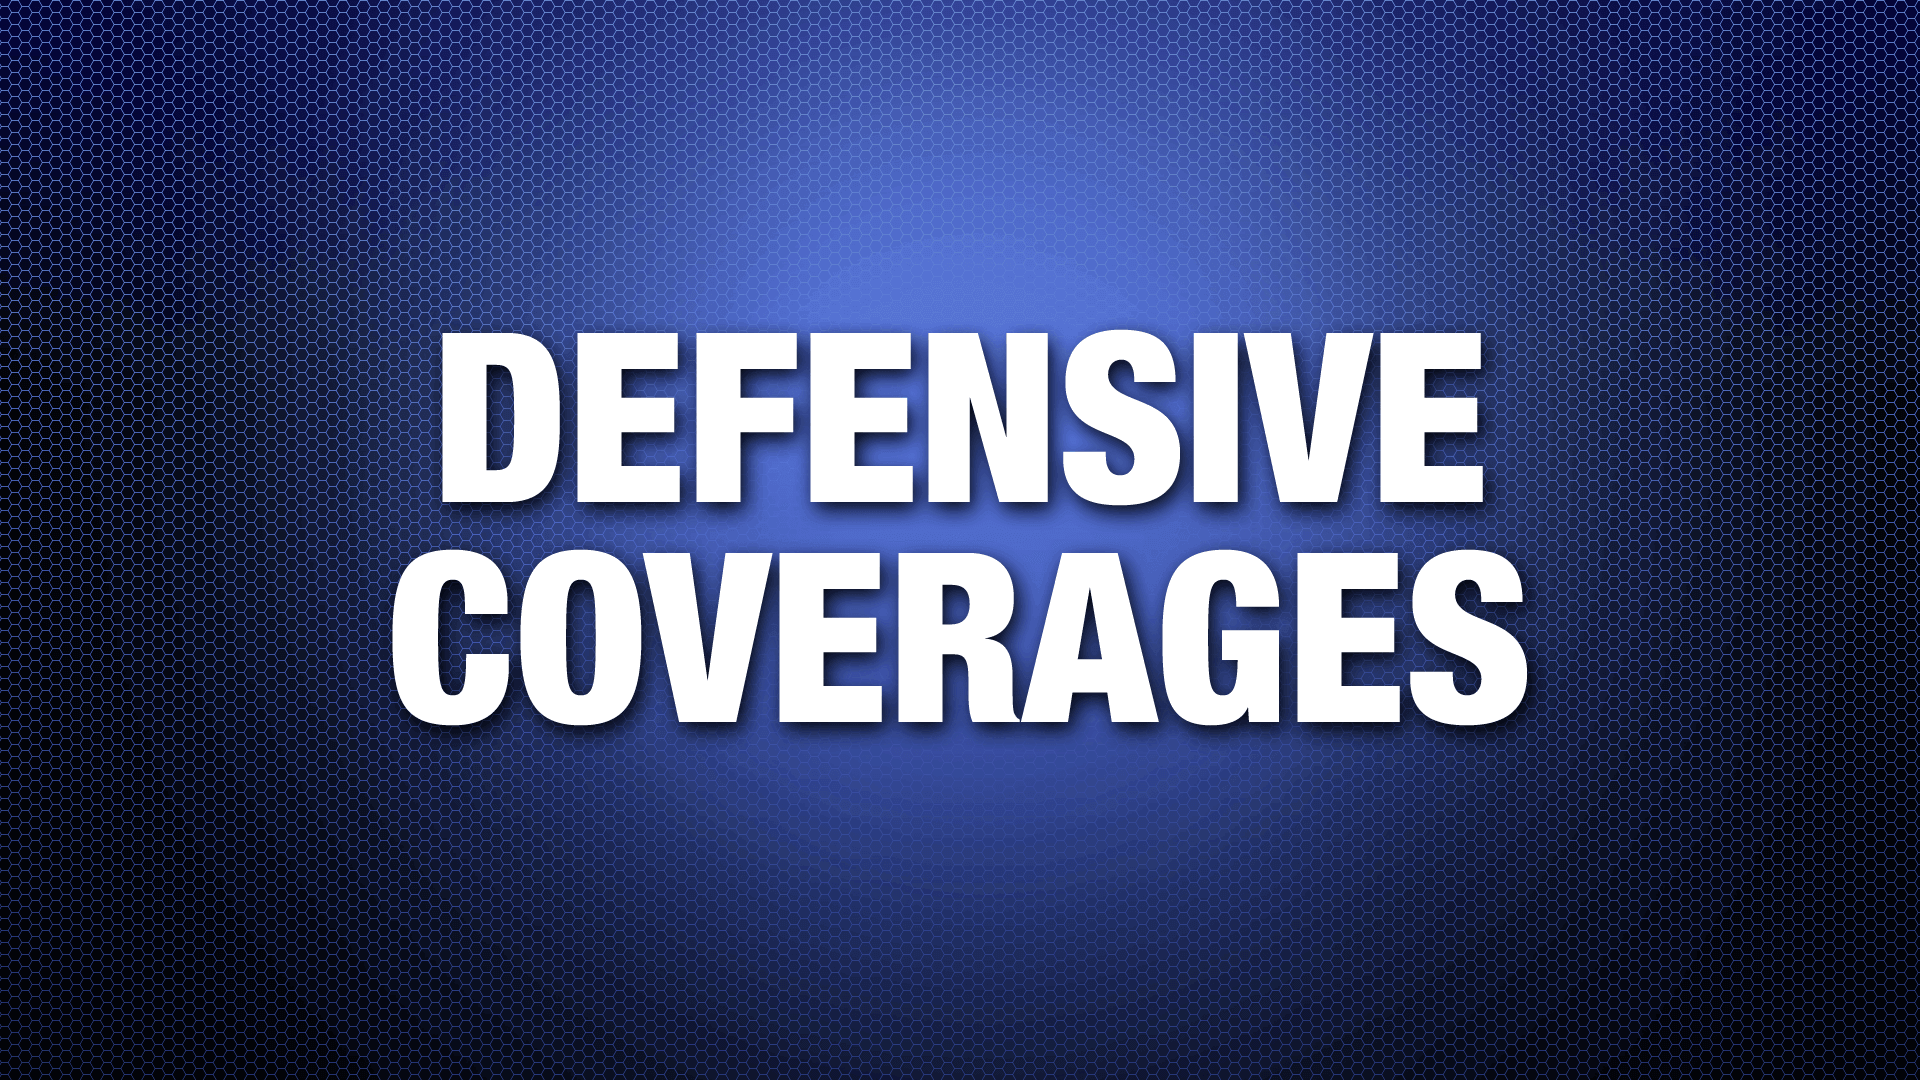 DefensiveCoverages